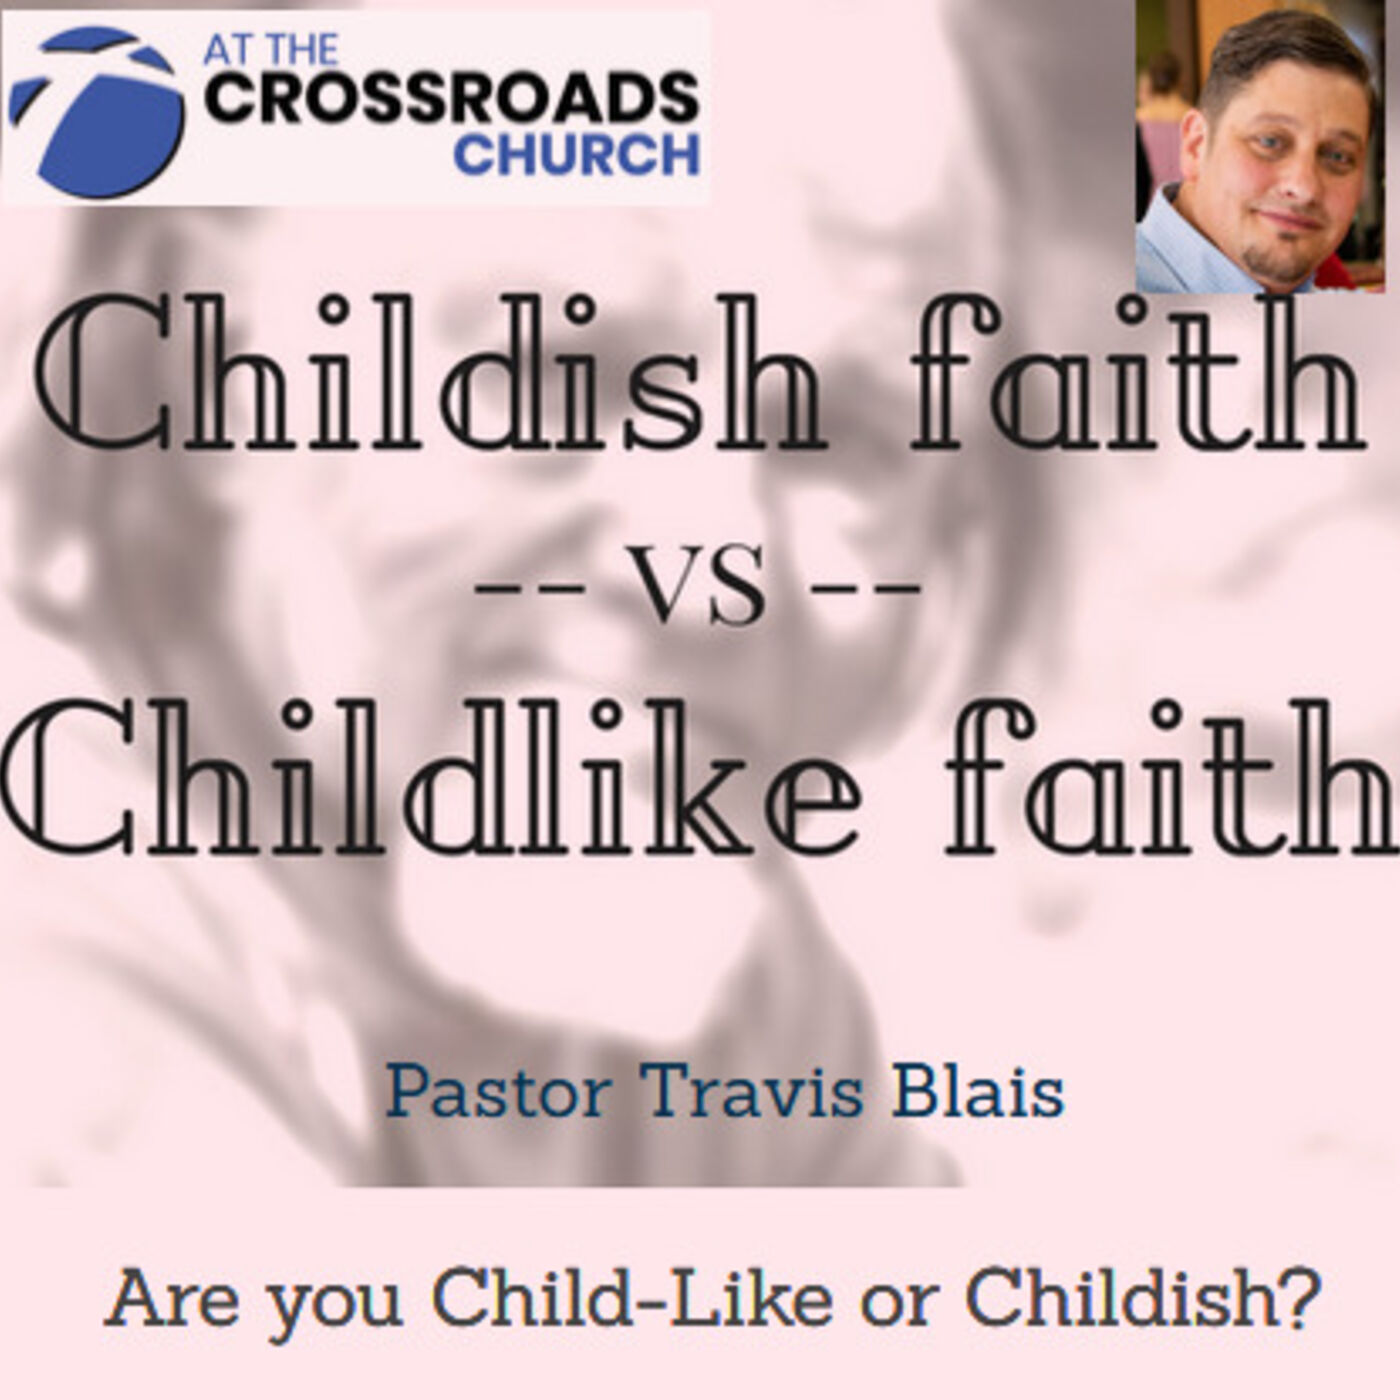 Are you Childlike or Childish ?